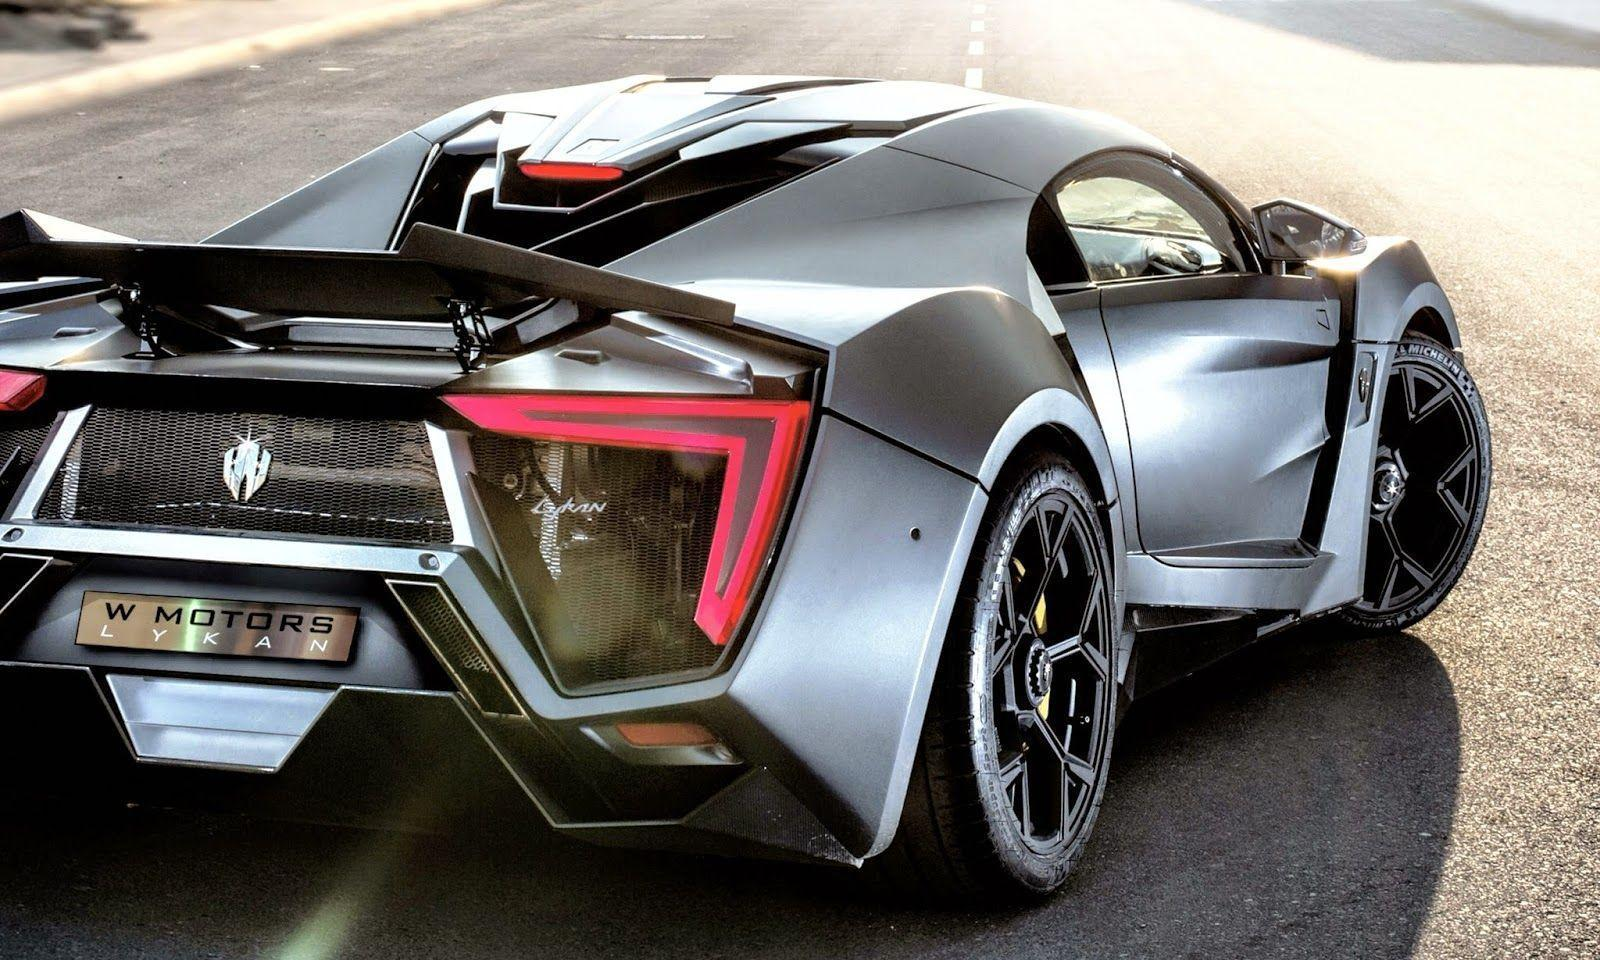 Lykan hypersport hd wallpapers wallpaper cave - Lykan hypersport wallpaper 1920x1080 ...